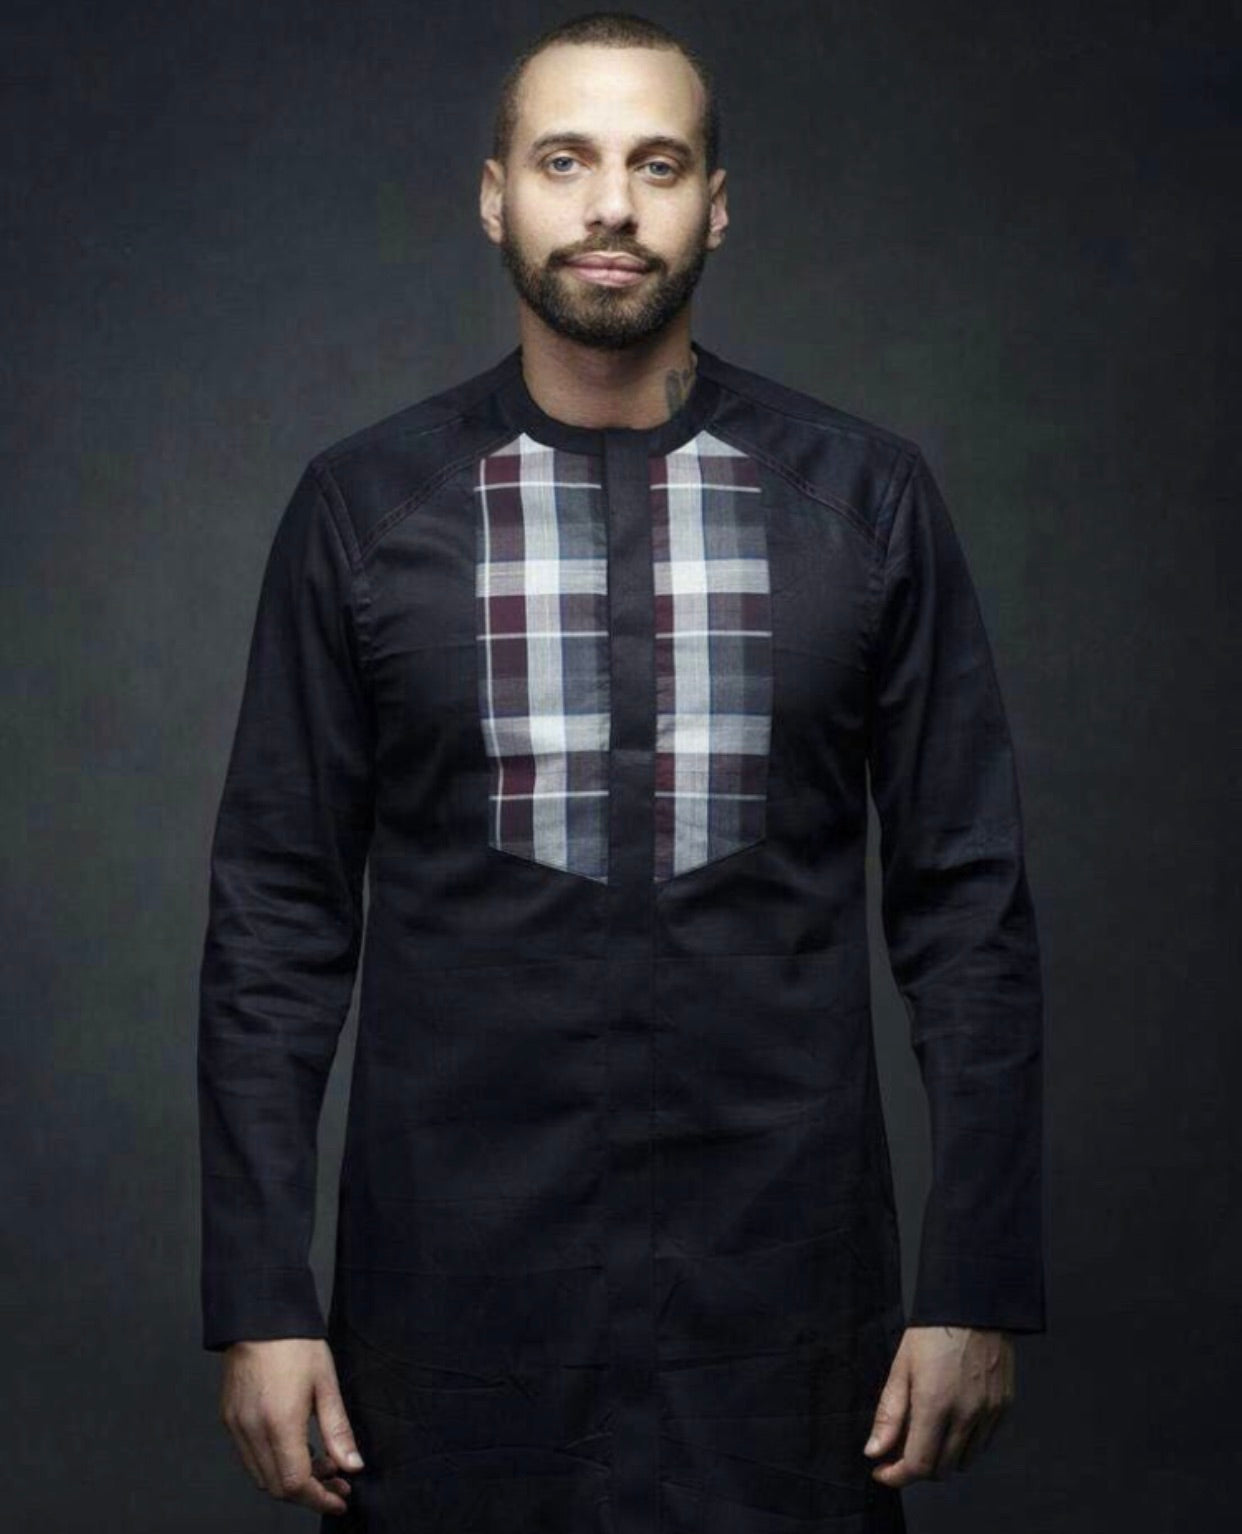 Men's Ankara Plaid Pride Top (Currently available in Navy Blue)